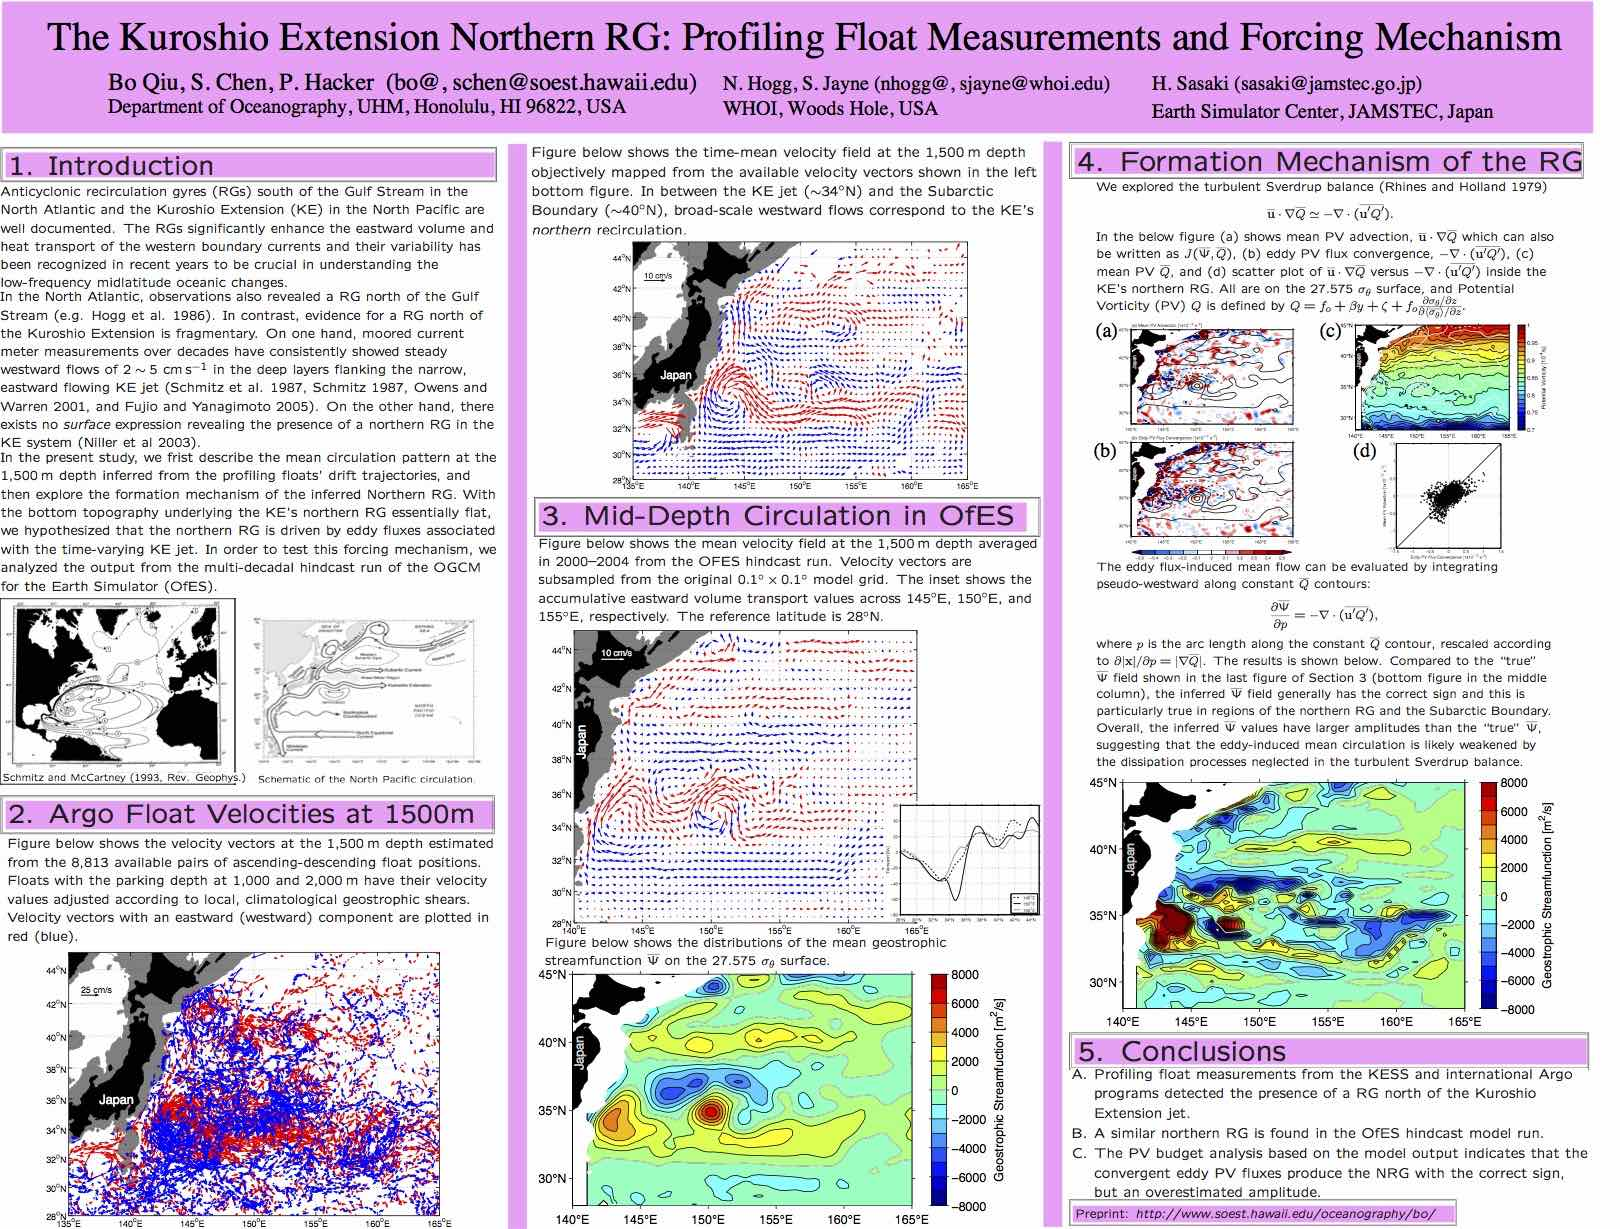 The Kurishio Extension Northern RG: Profiling Float Measurements and Forcing Mechanism